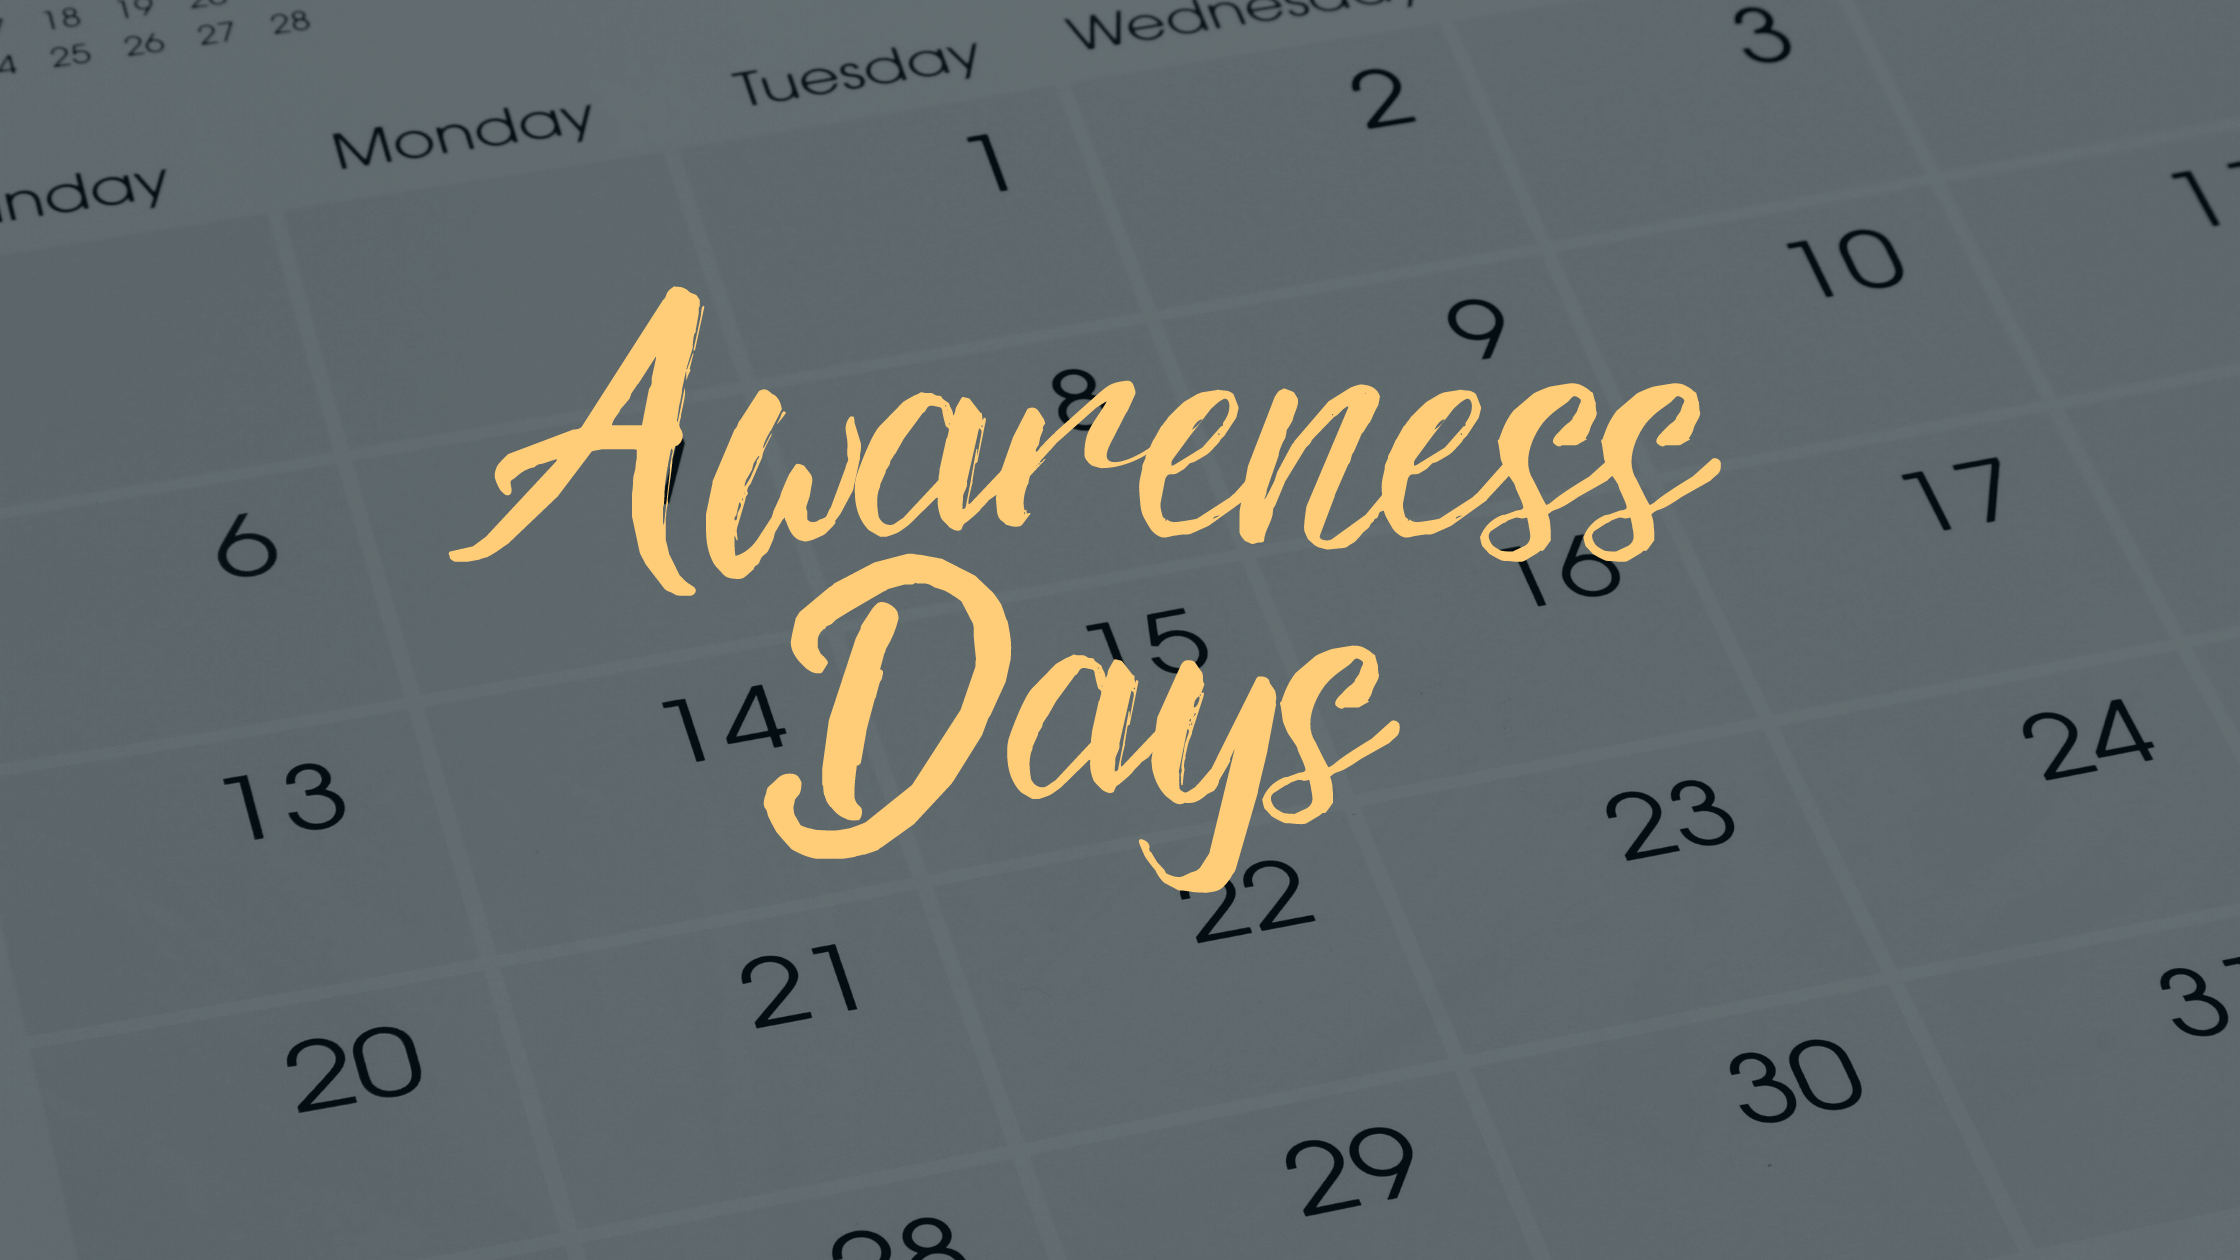 How awarenessdays can generate content ideas for business